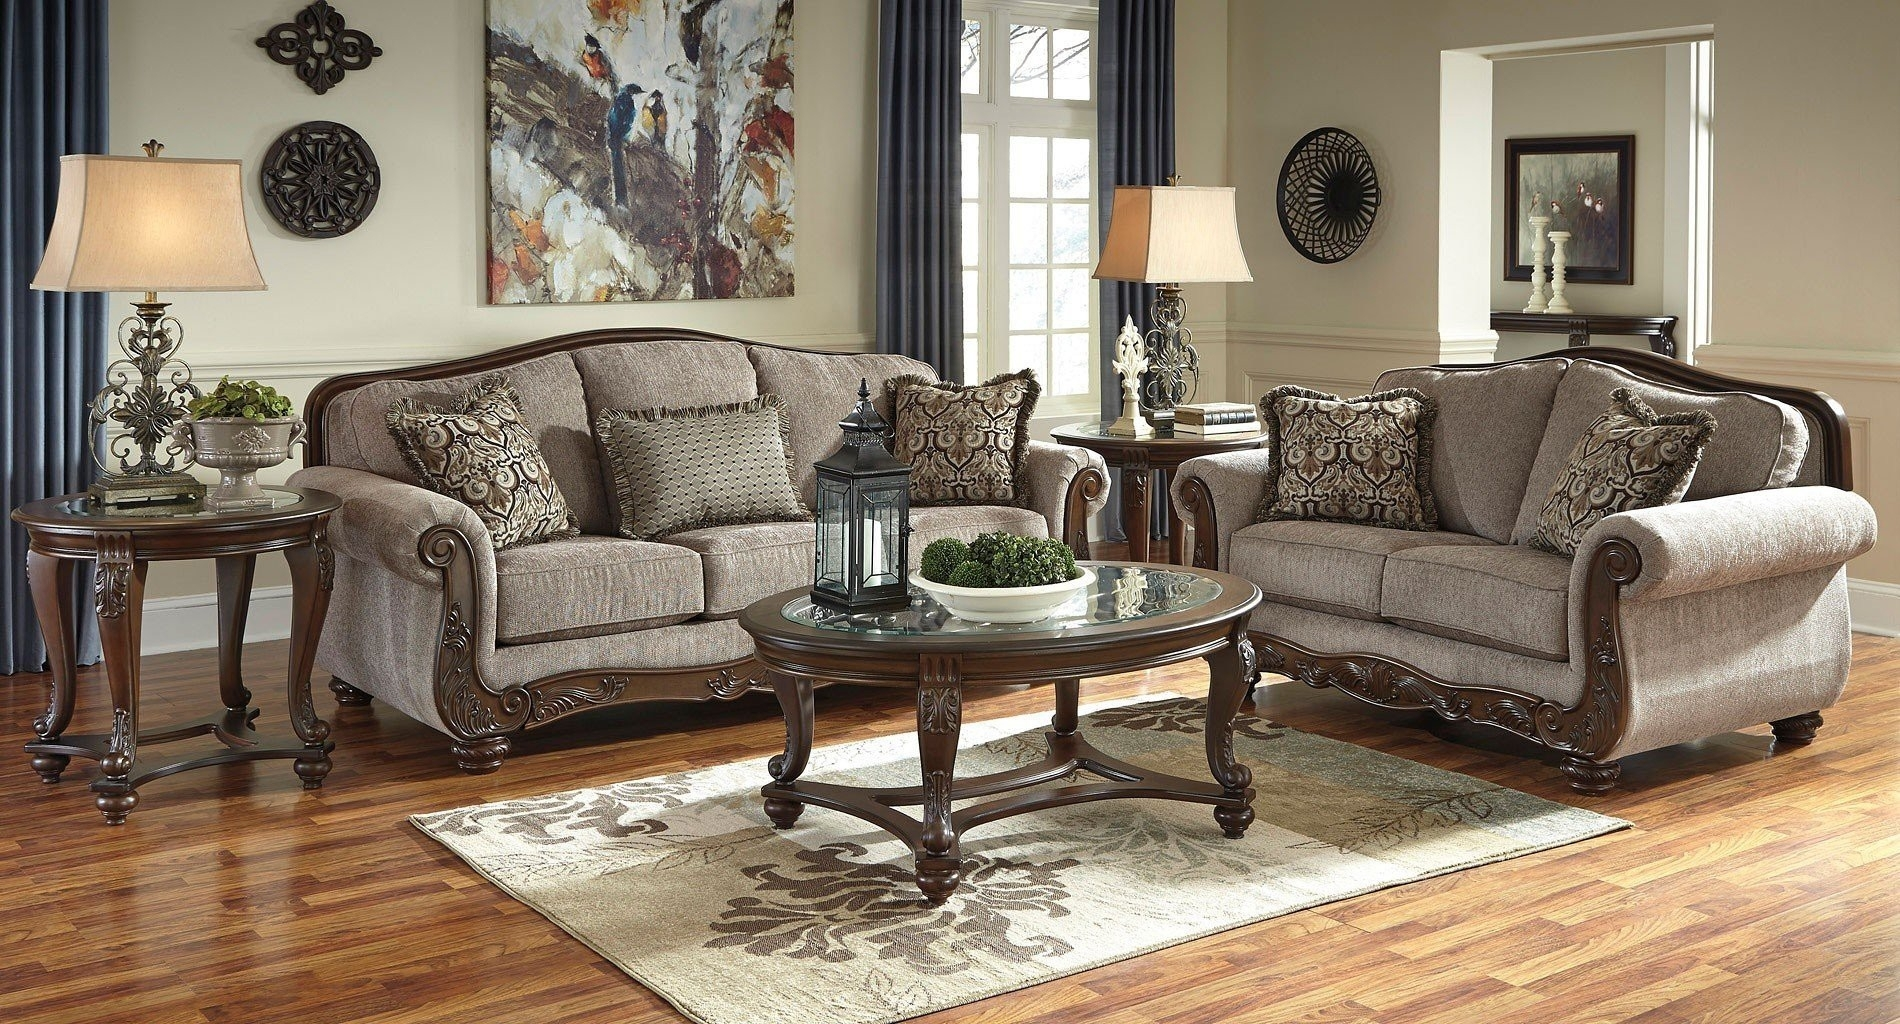 Classic Living Room Wall Art With Reference To Ashley Furniture within Ashley Furniture Wall Art (Image 14 of 20)